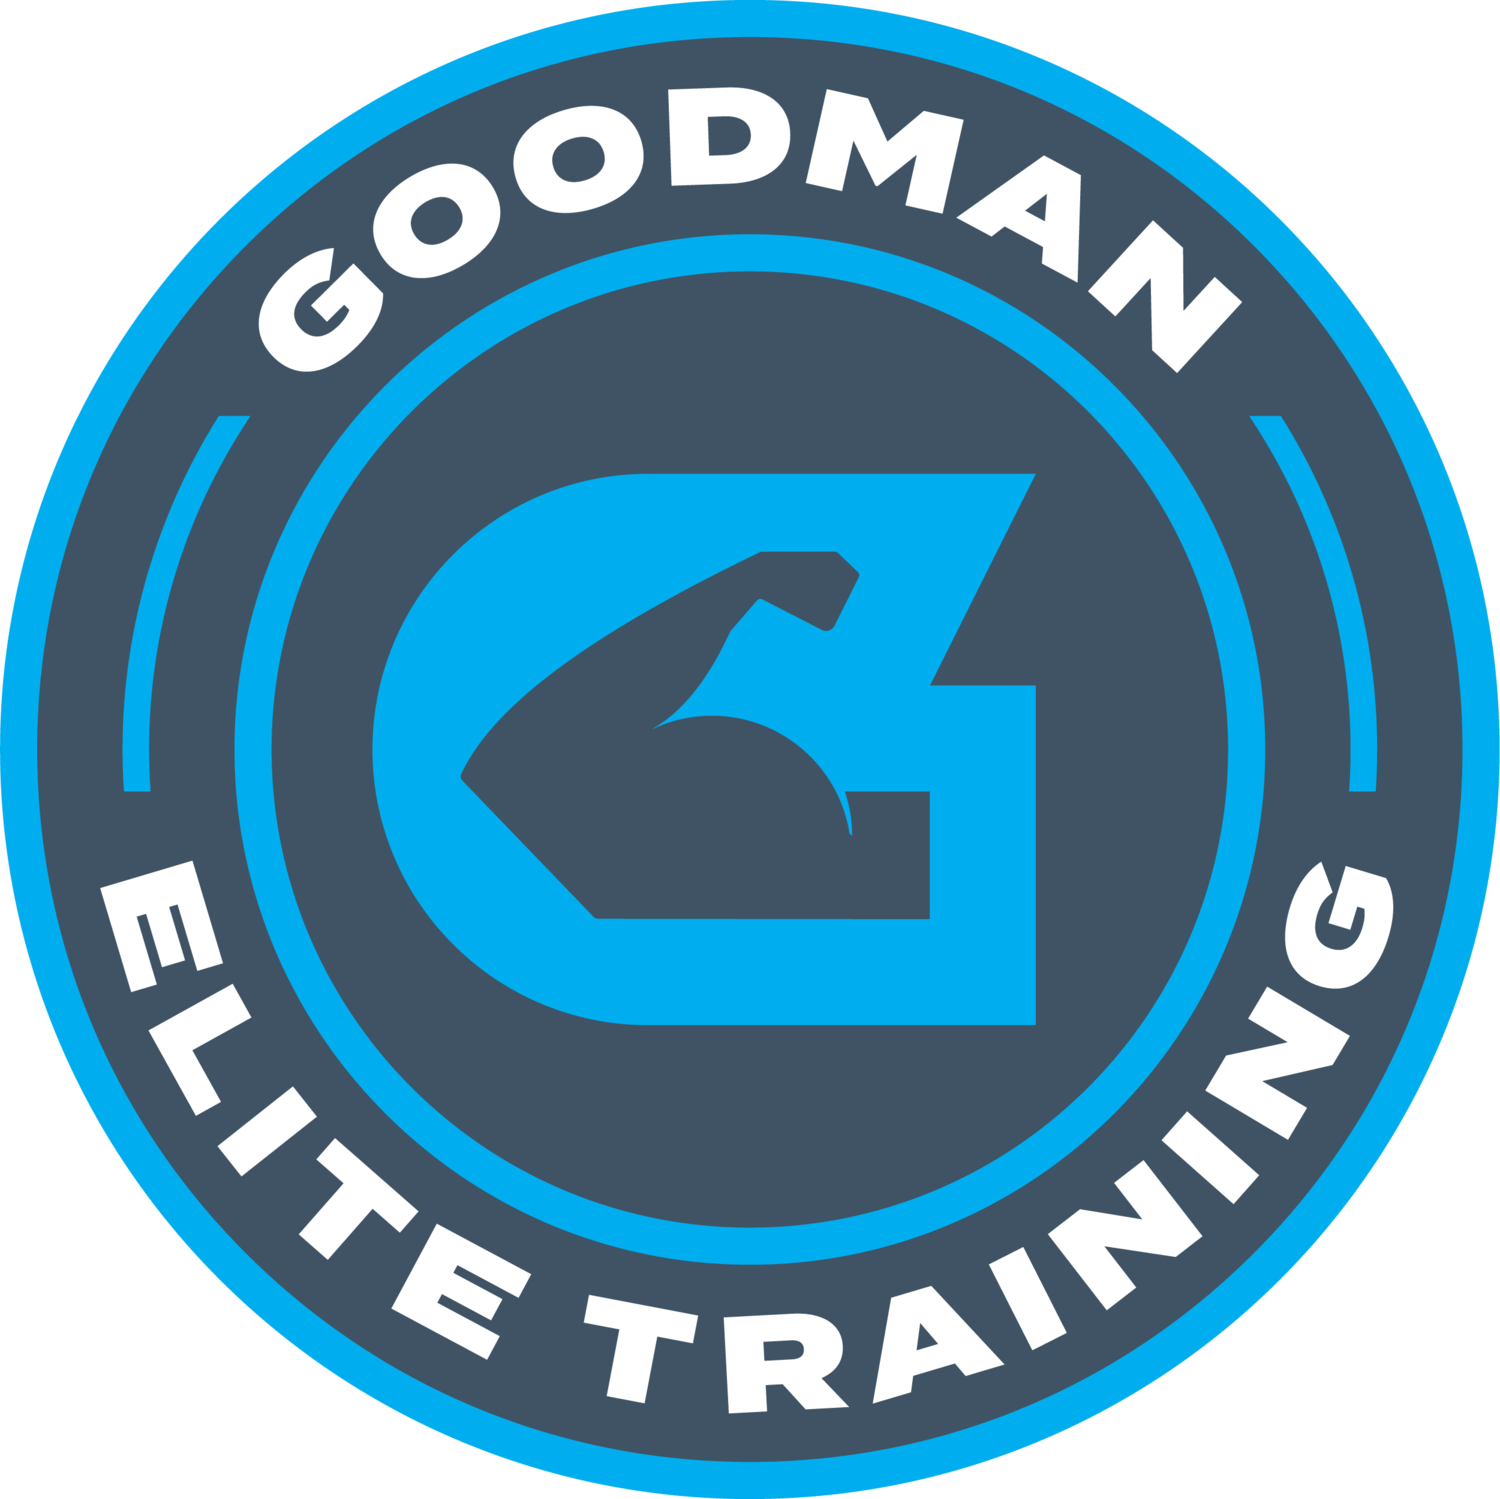 Goodman Elite Training